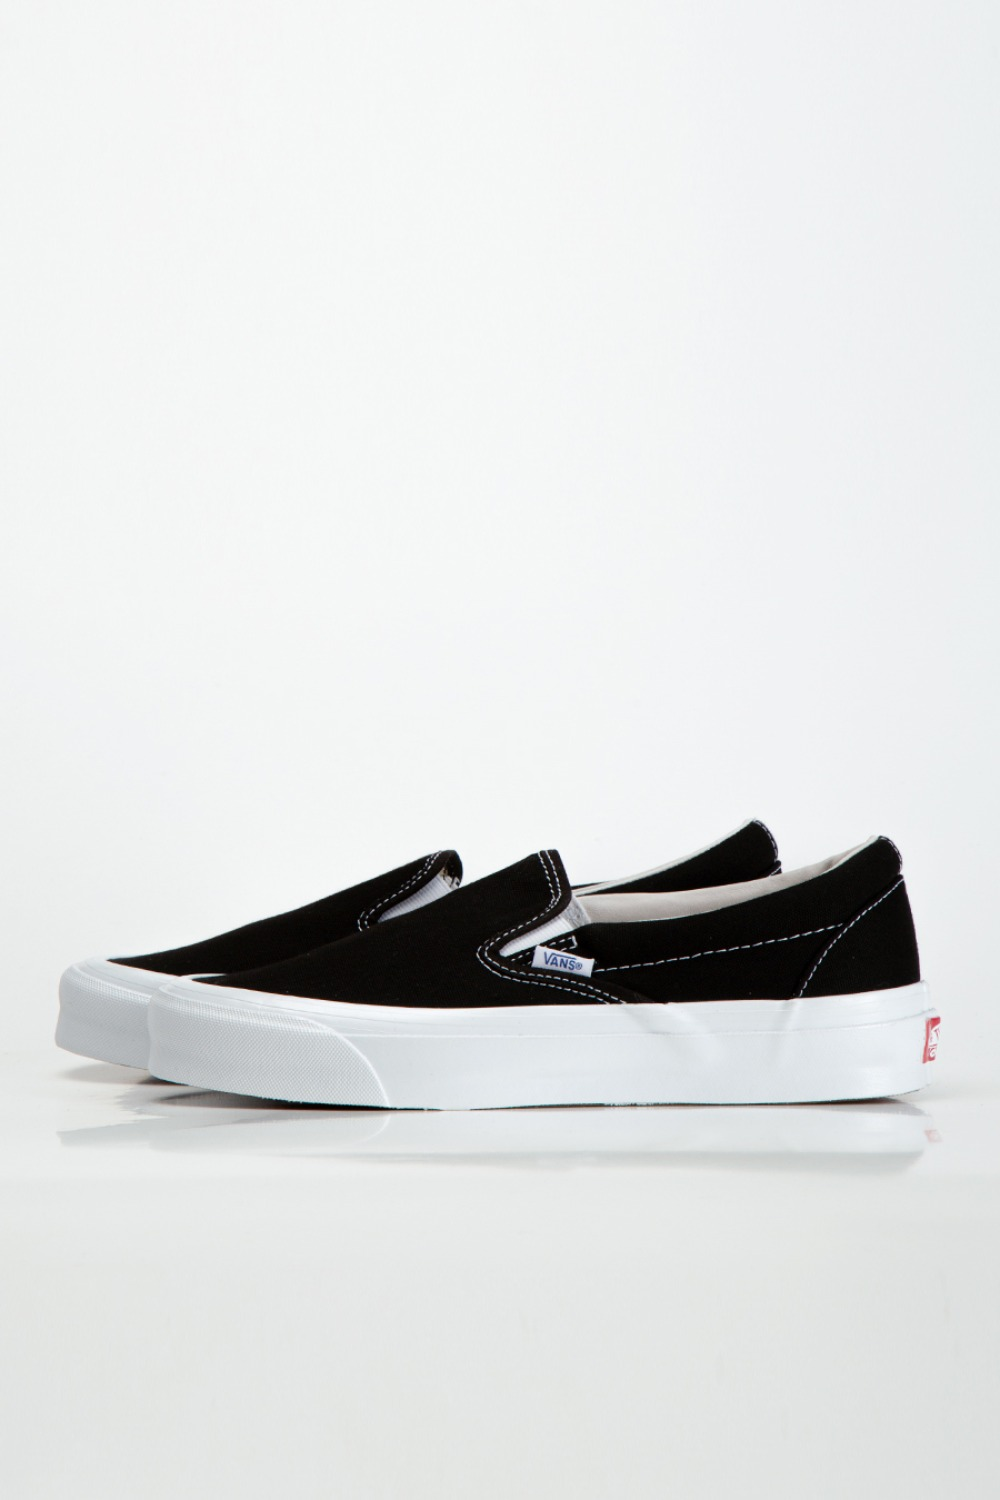 (RESTOCK)OG CLASSIC SLIP-ON LX(CANVAS) BLACK/TRUE WHITE